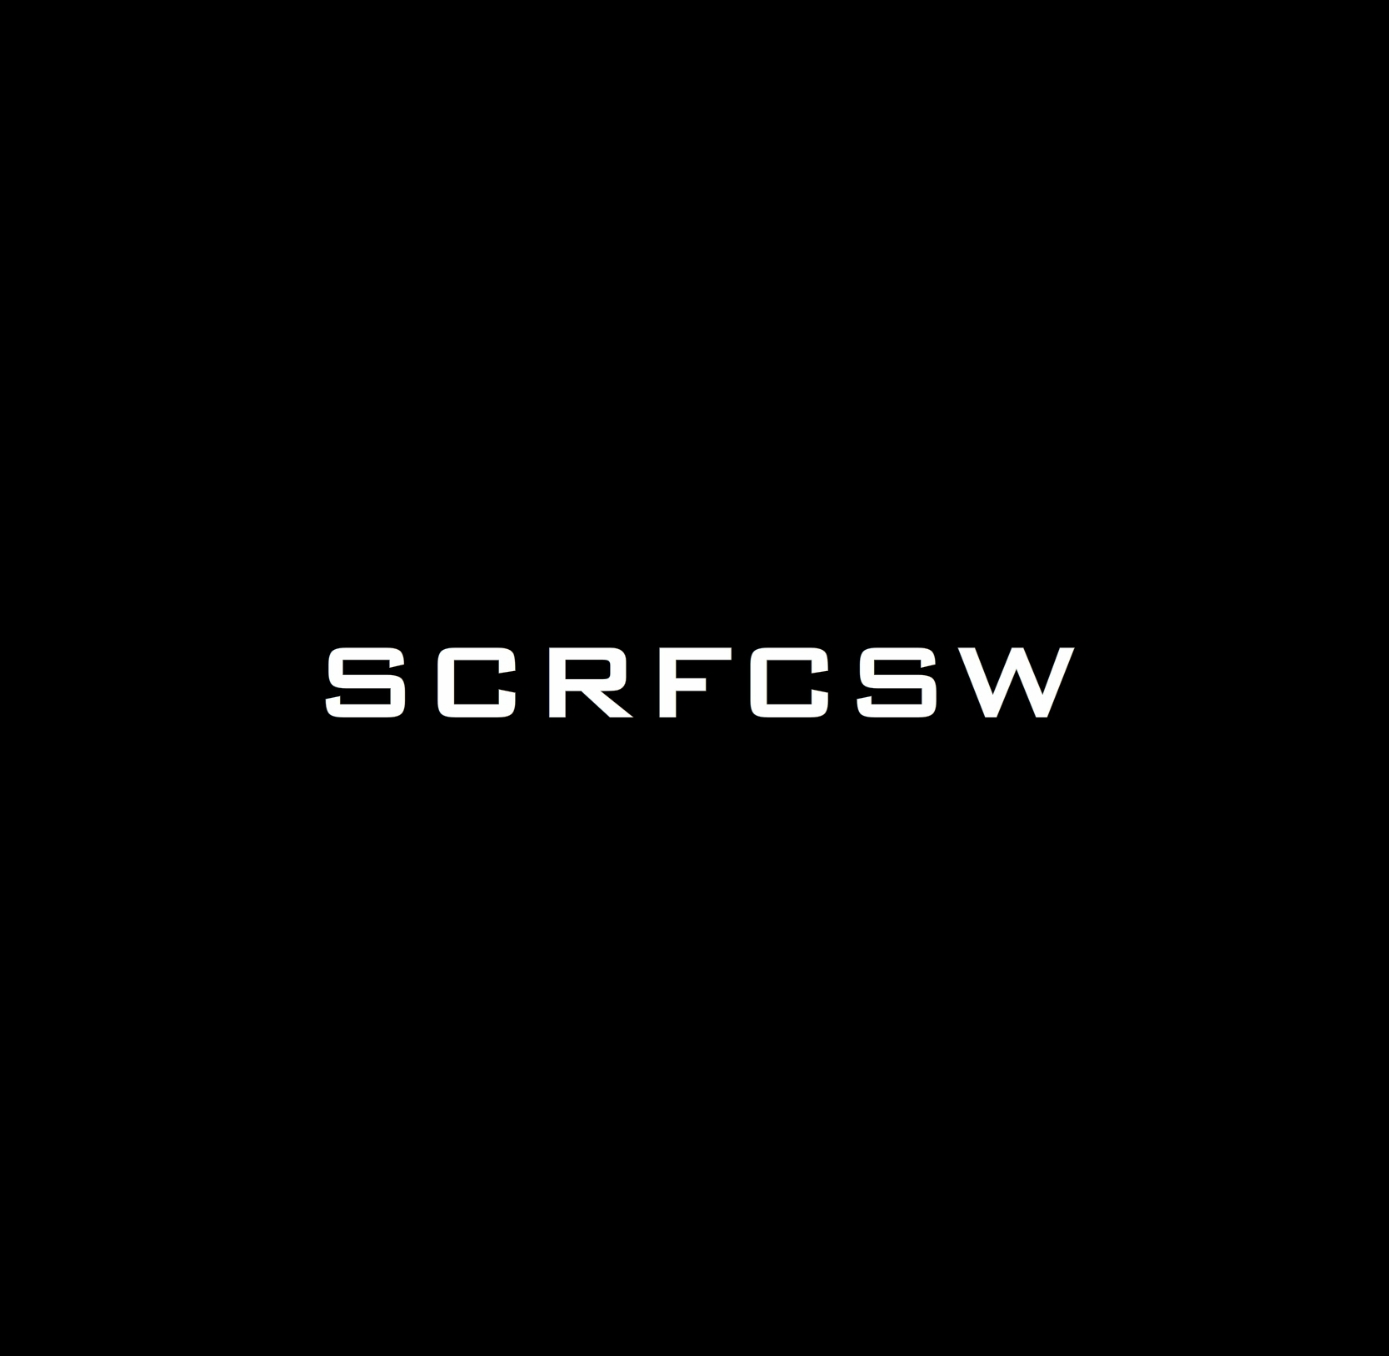 SCRFCSW.jpg